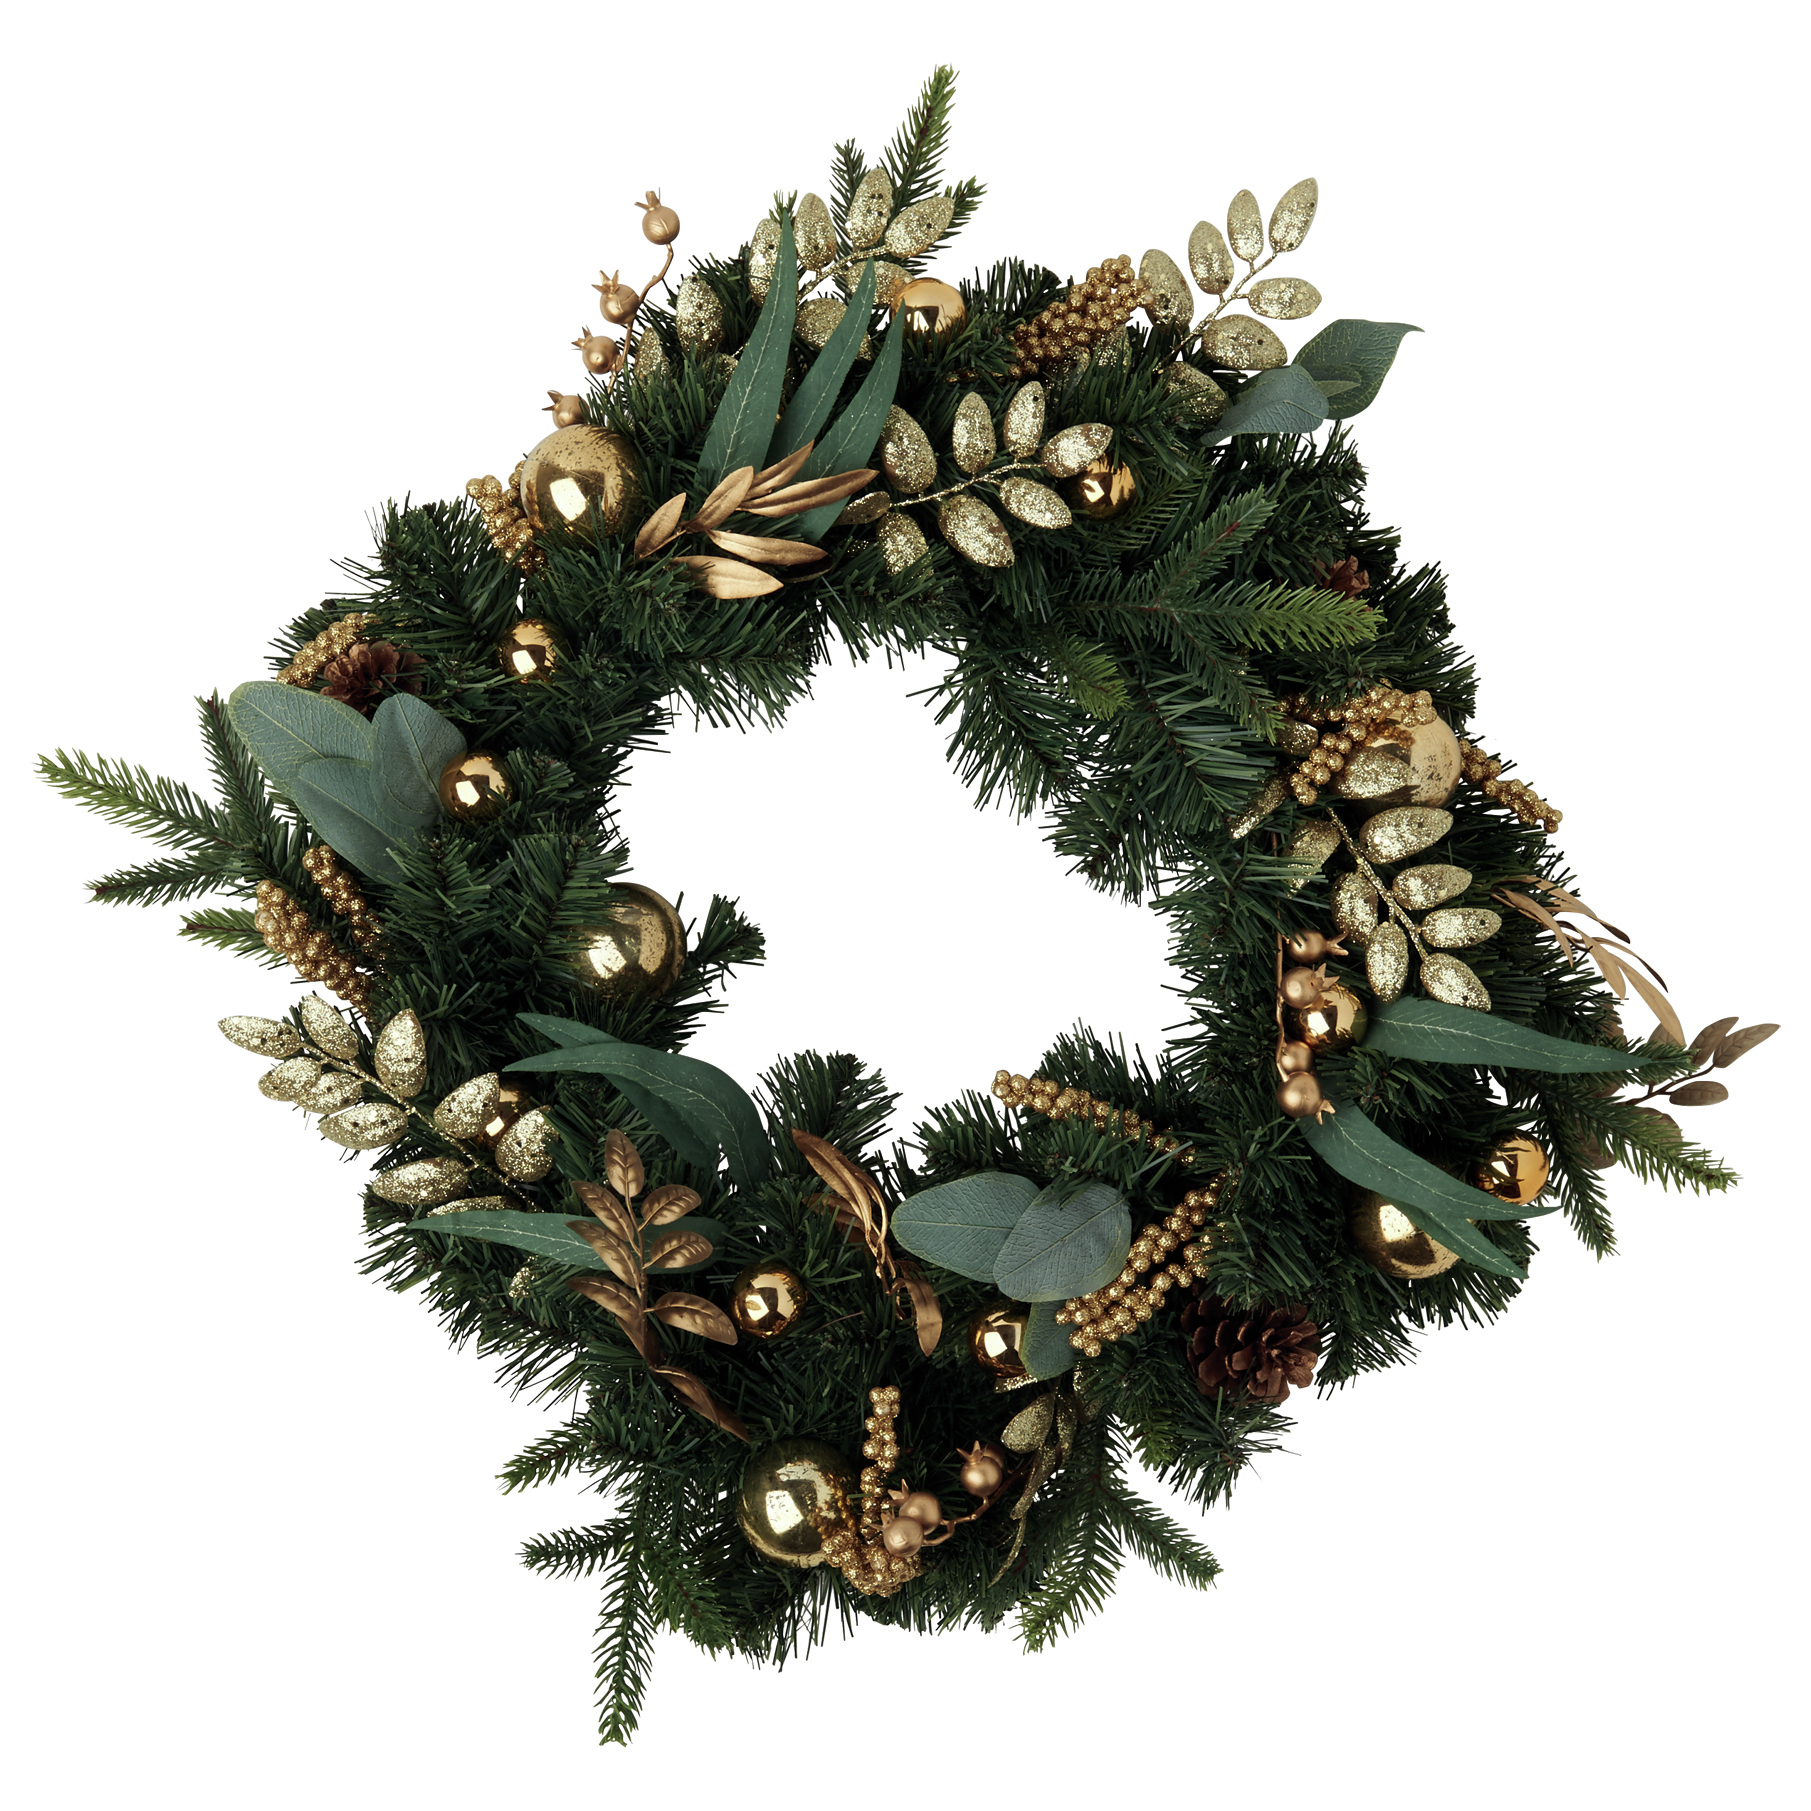 Best Christmas Wreaths Christmas Decorations